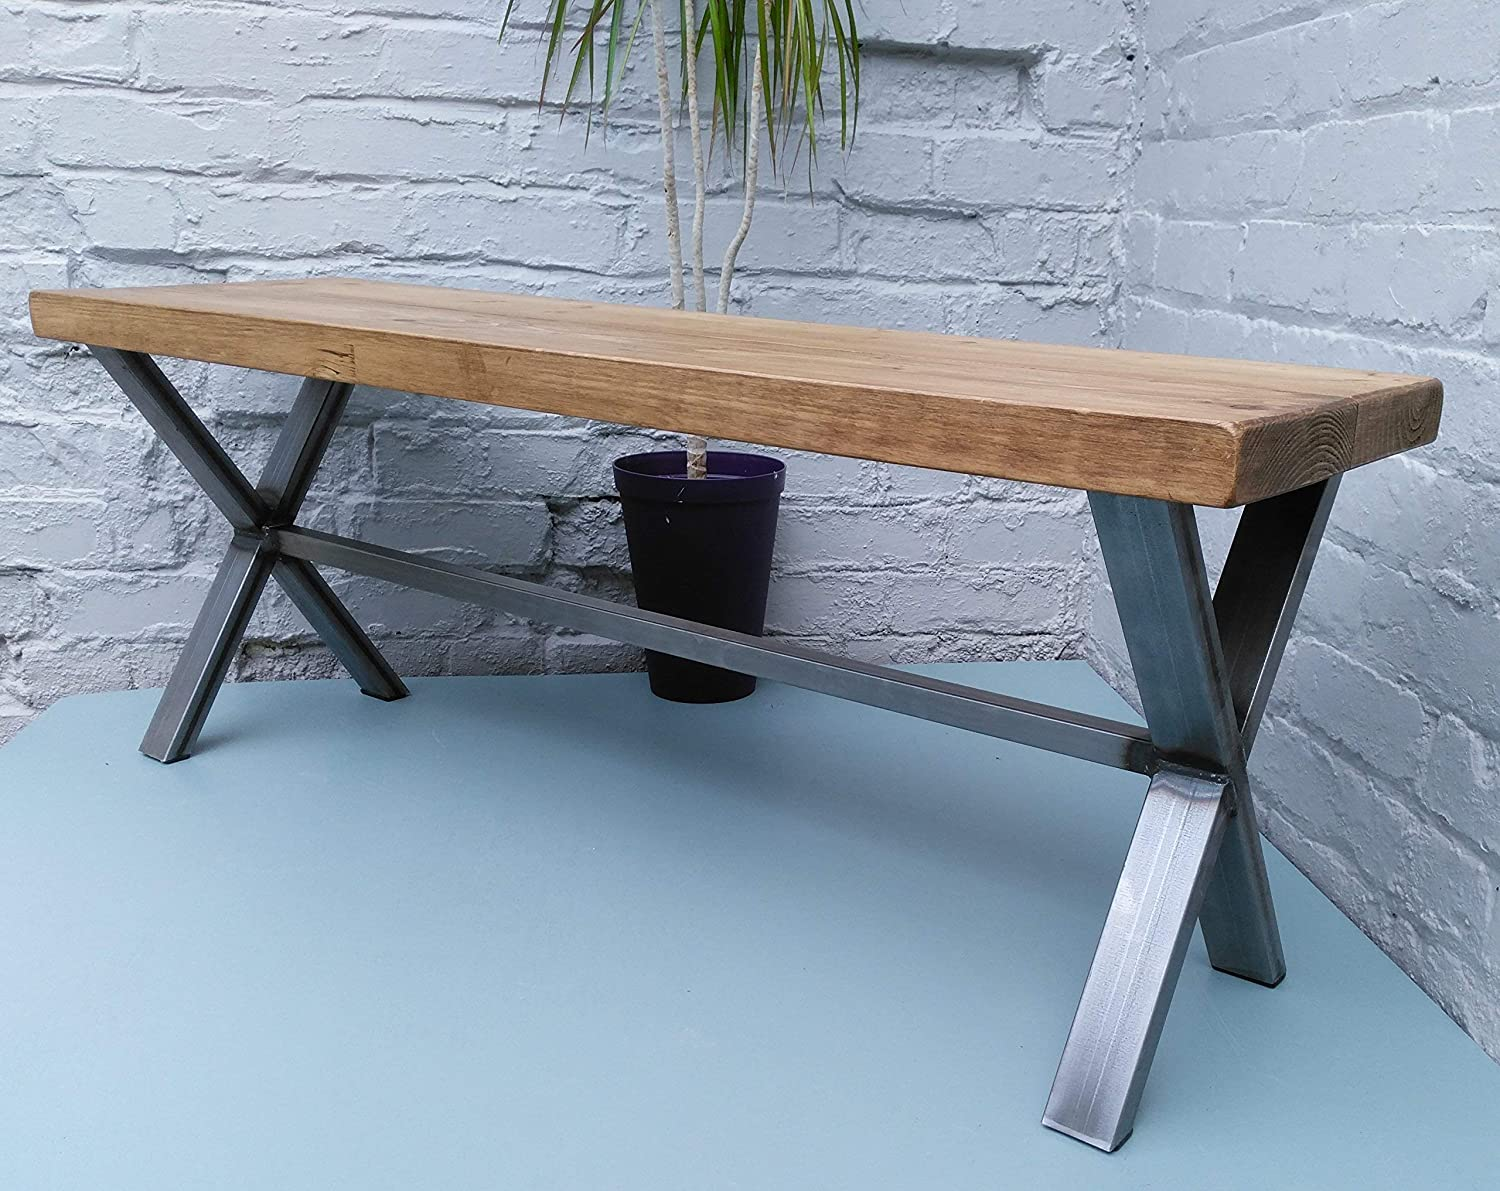 235: Kitchen Bench deeper rustic seat with metal X frame base hallway bench seat 140 cm